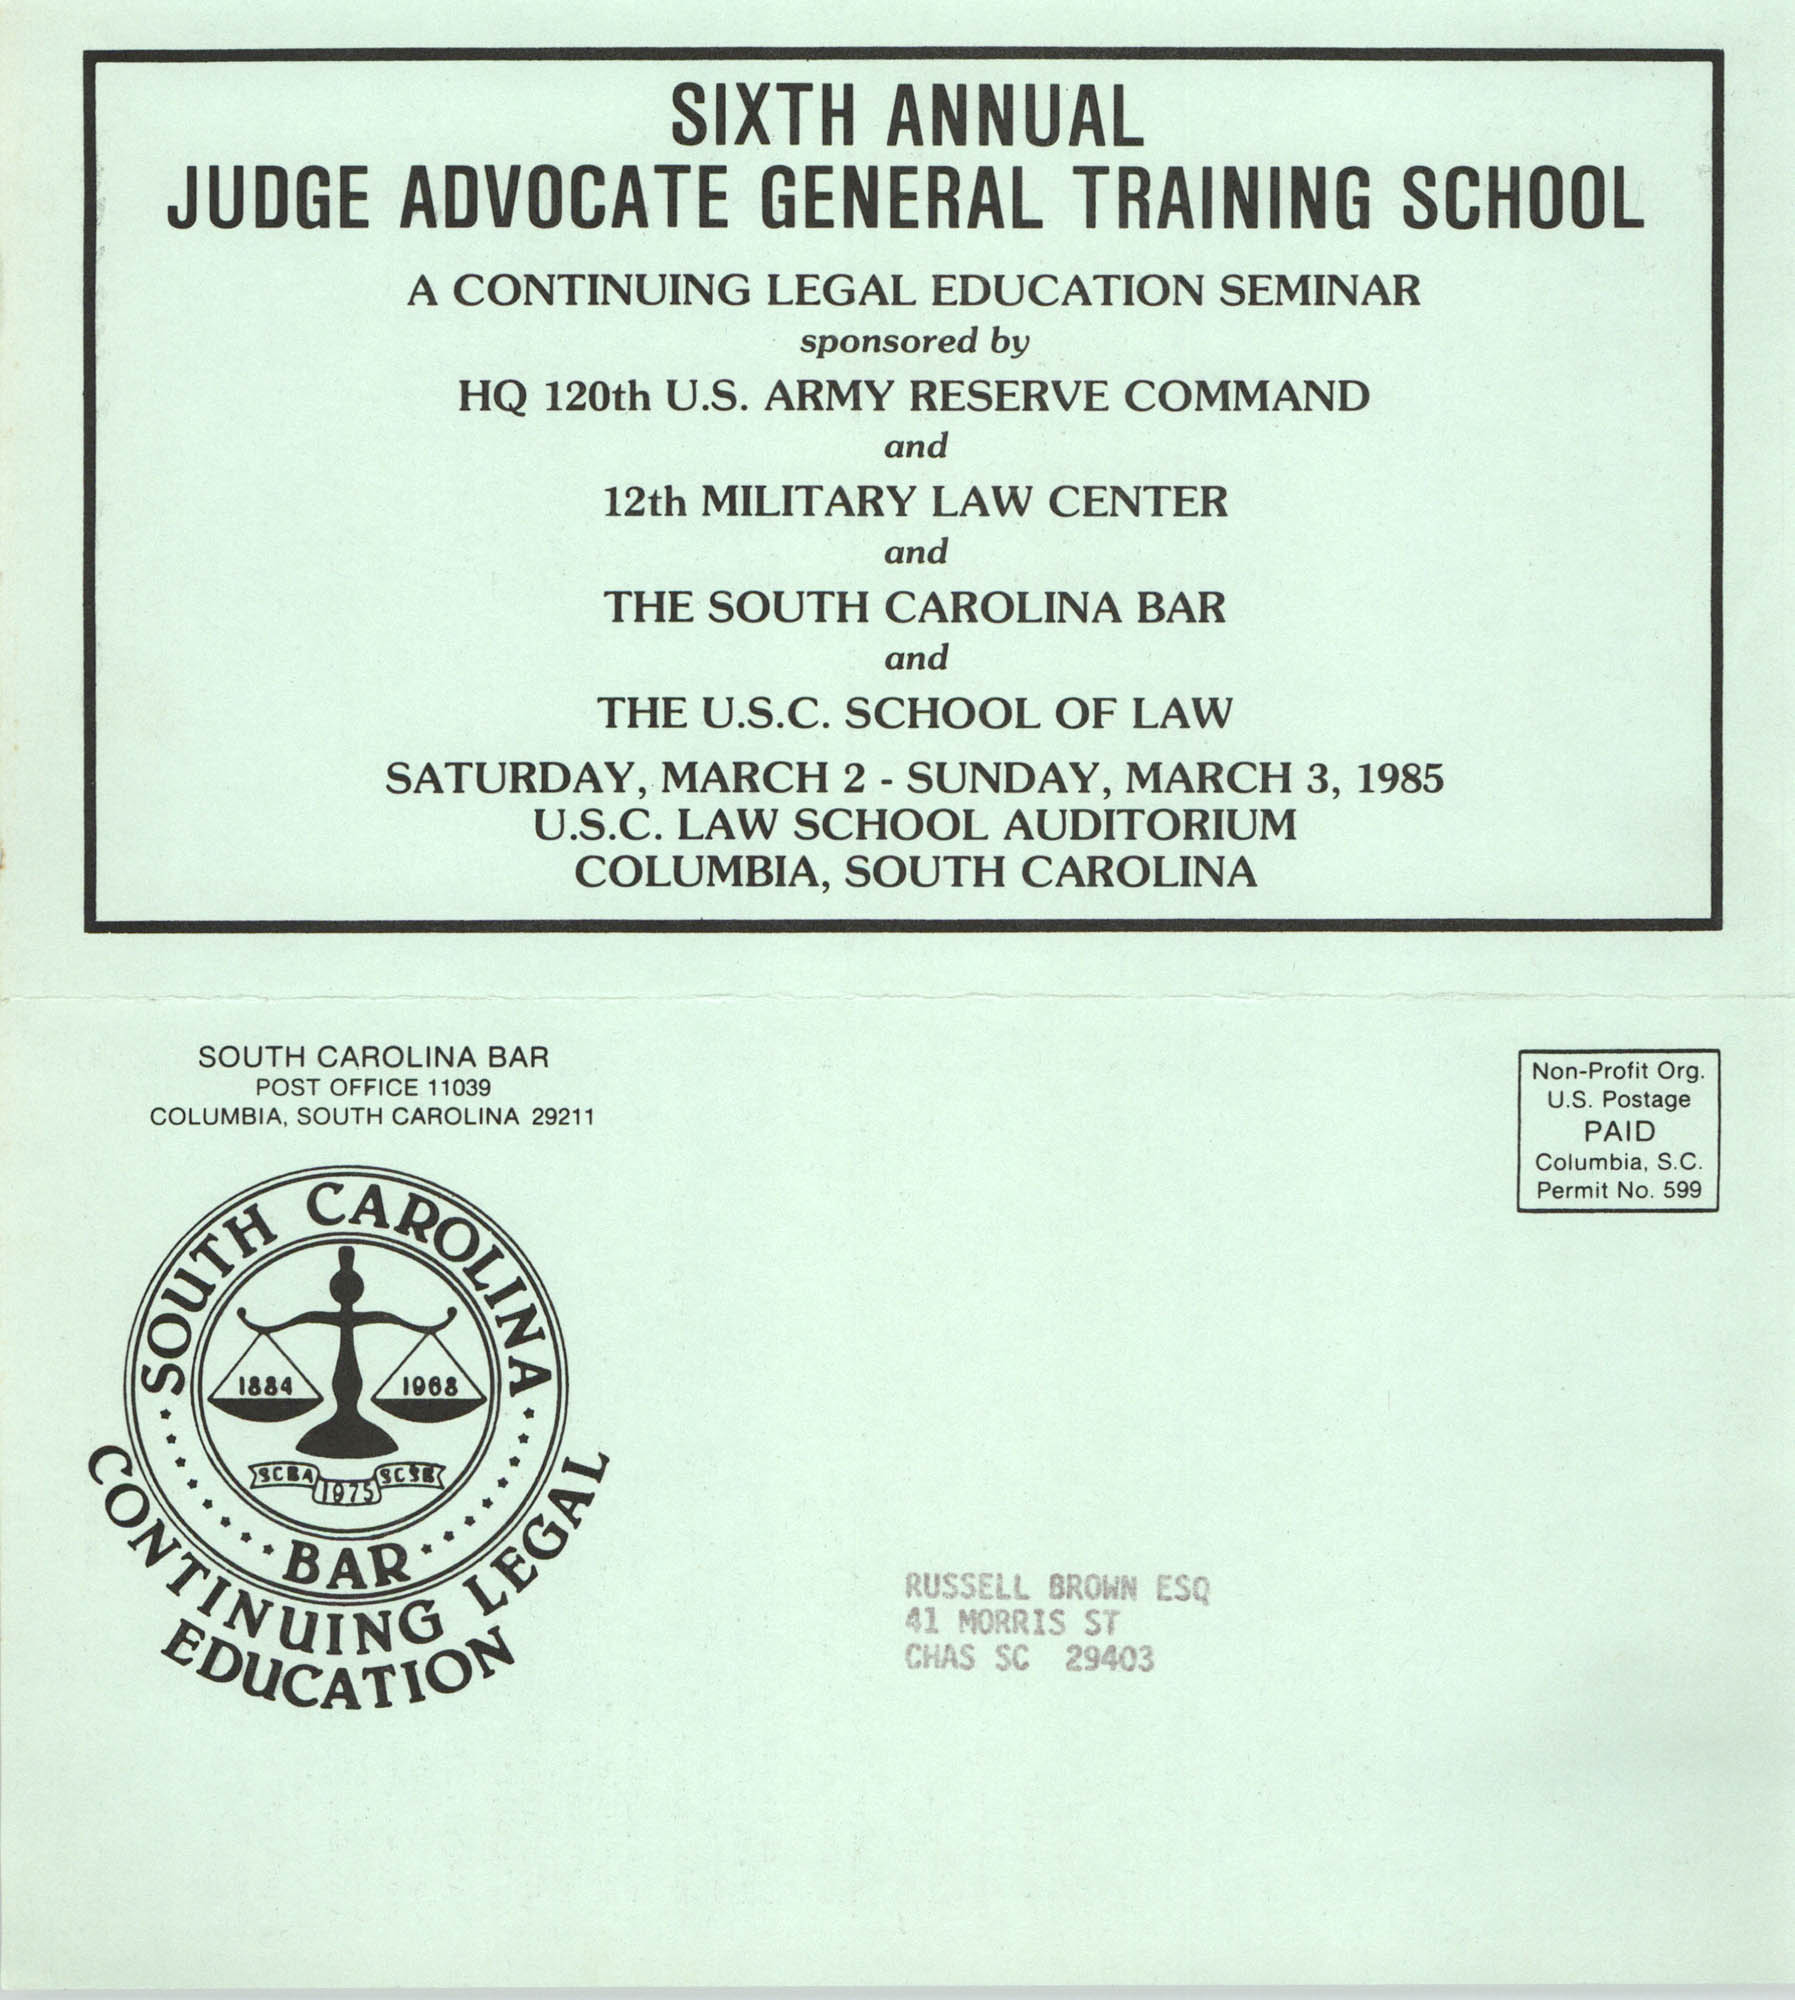 Sixth Annual Judge Advocate General Training School, Continuing Legal Education Seminar Pamphlet, March 2-3, 1985, Russell Brown